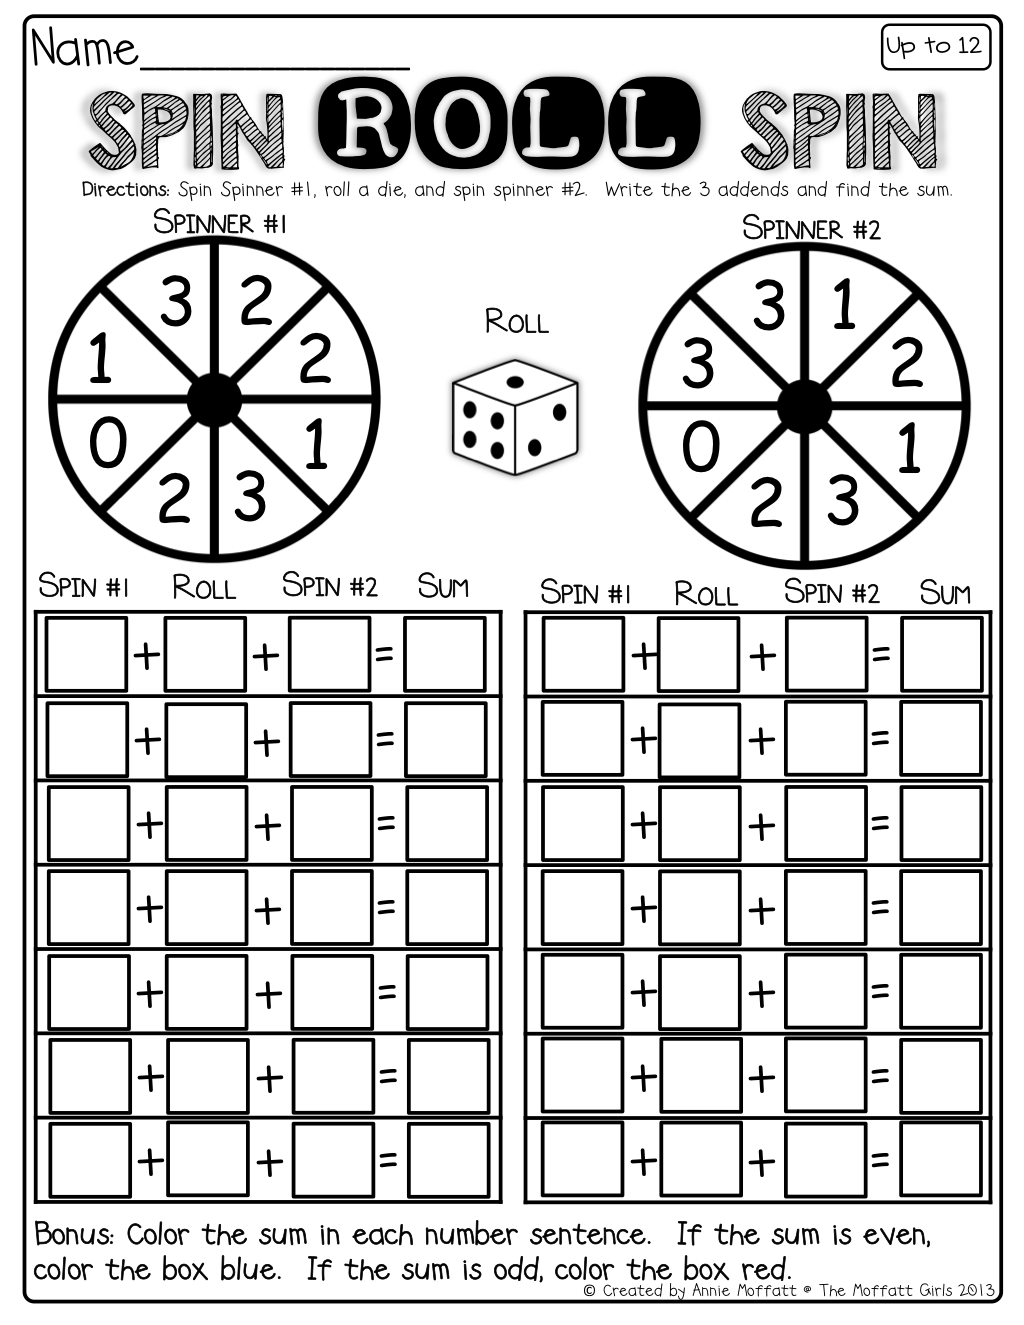 worksheet Adding Three Numbers spin the spinner roll a die and to add 3 numbers numbers